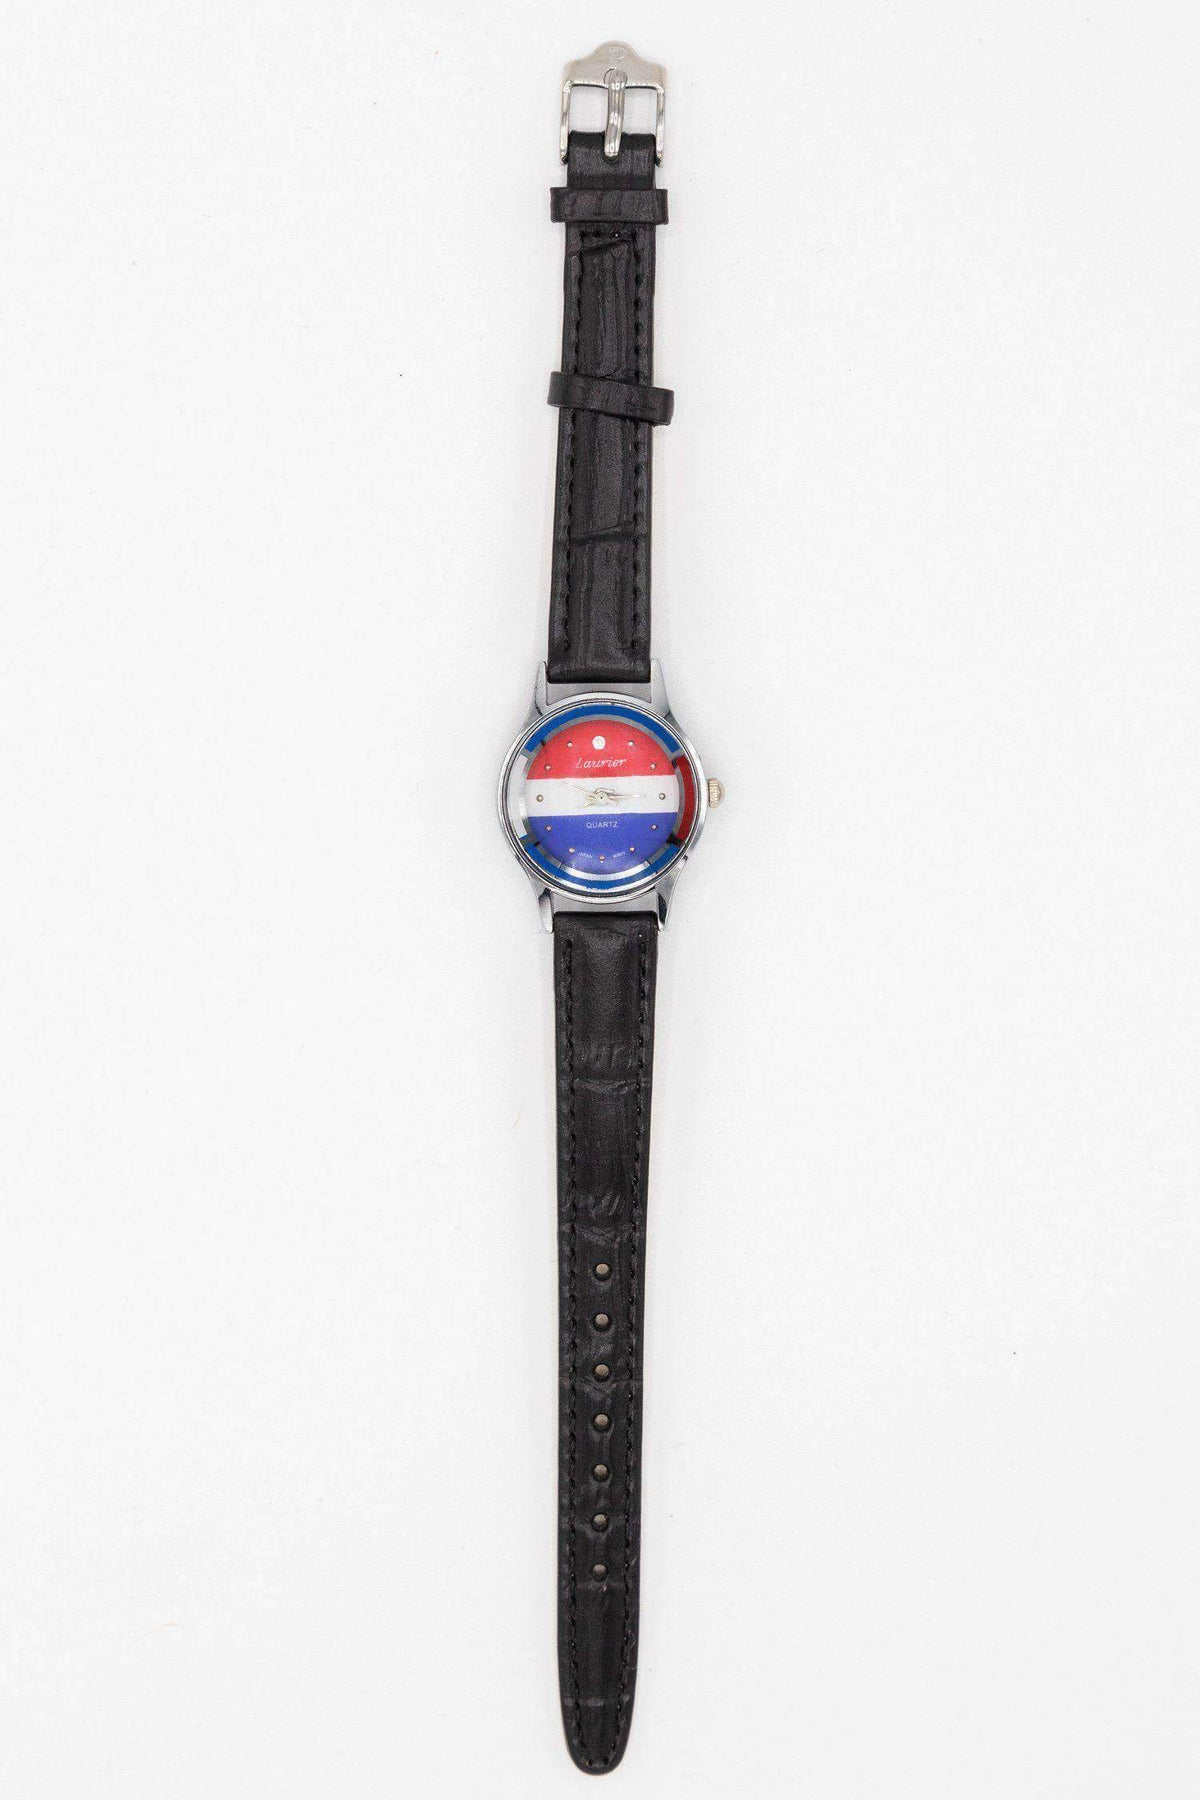 WCHLFR - Laurier France Watch watch Los Angeles Apparel OS Black